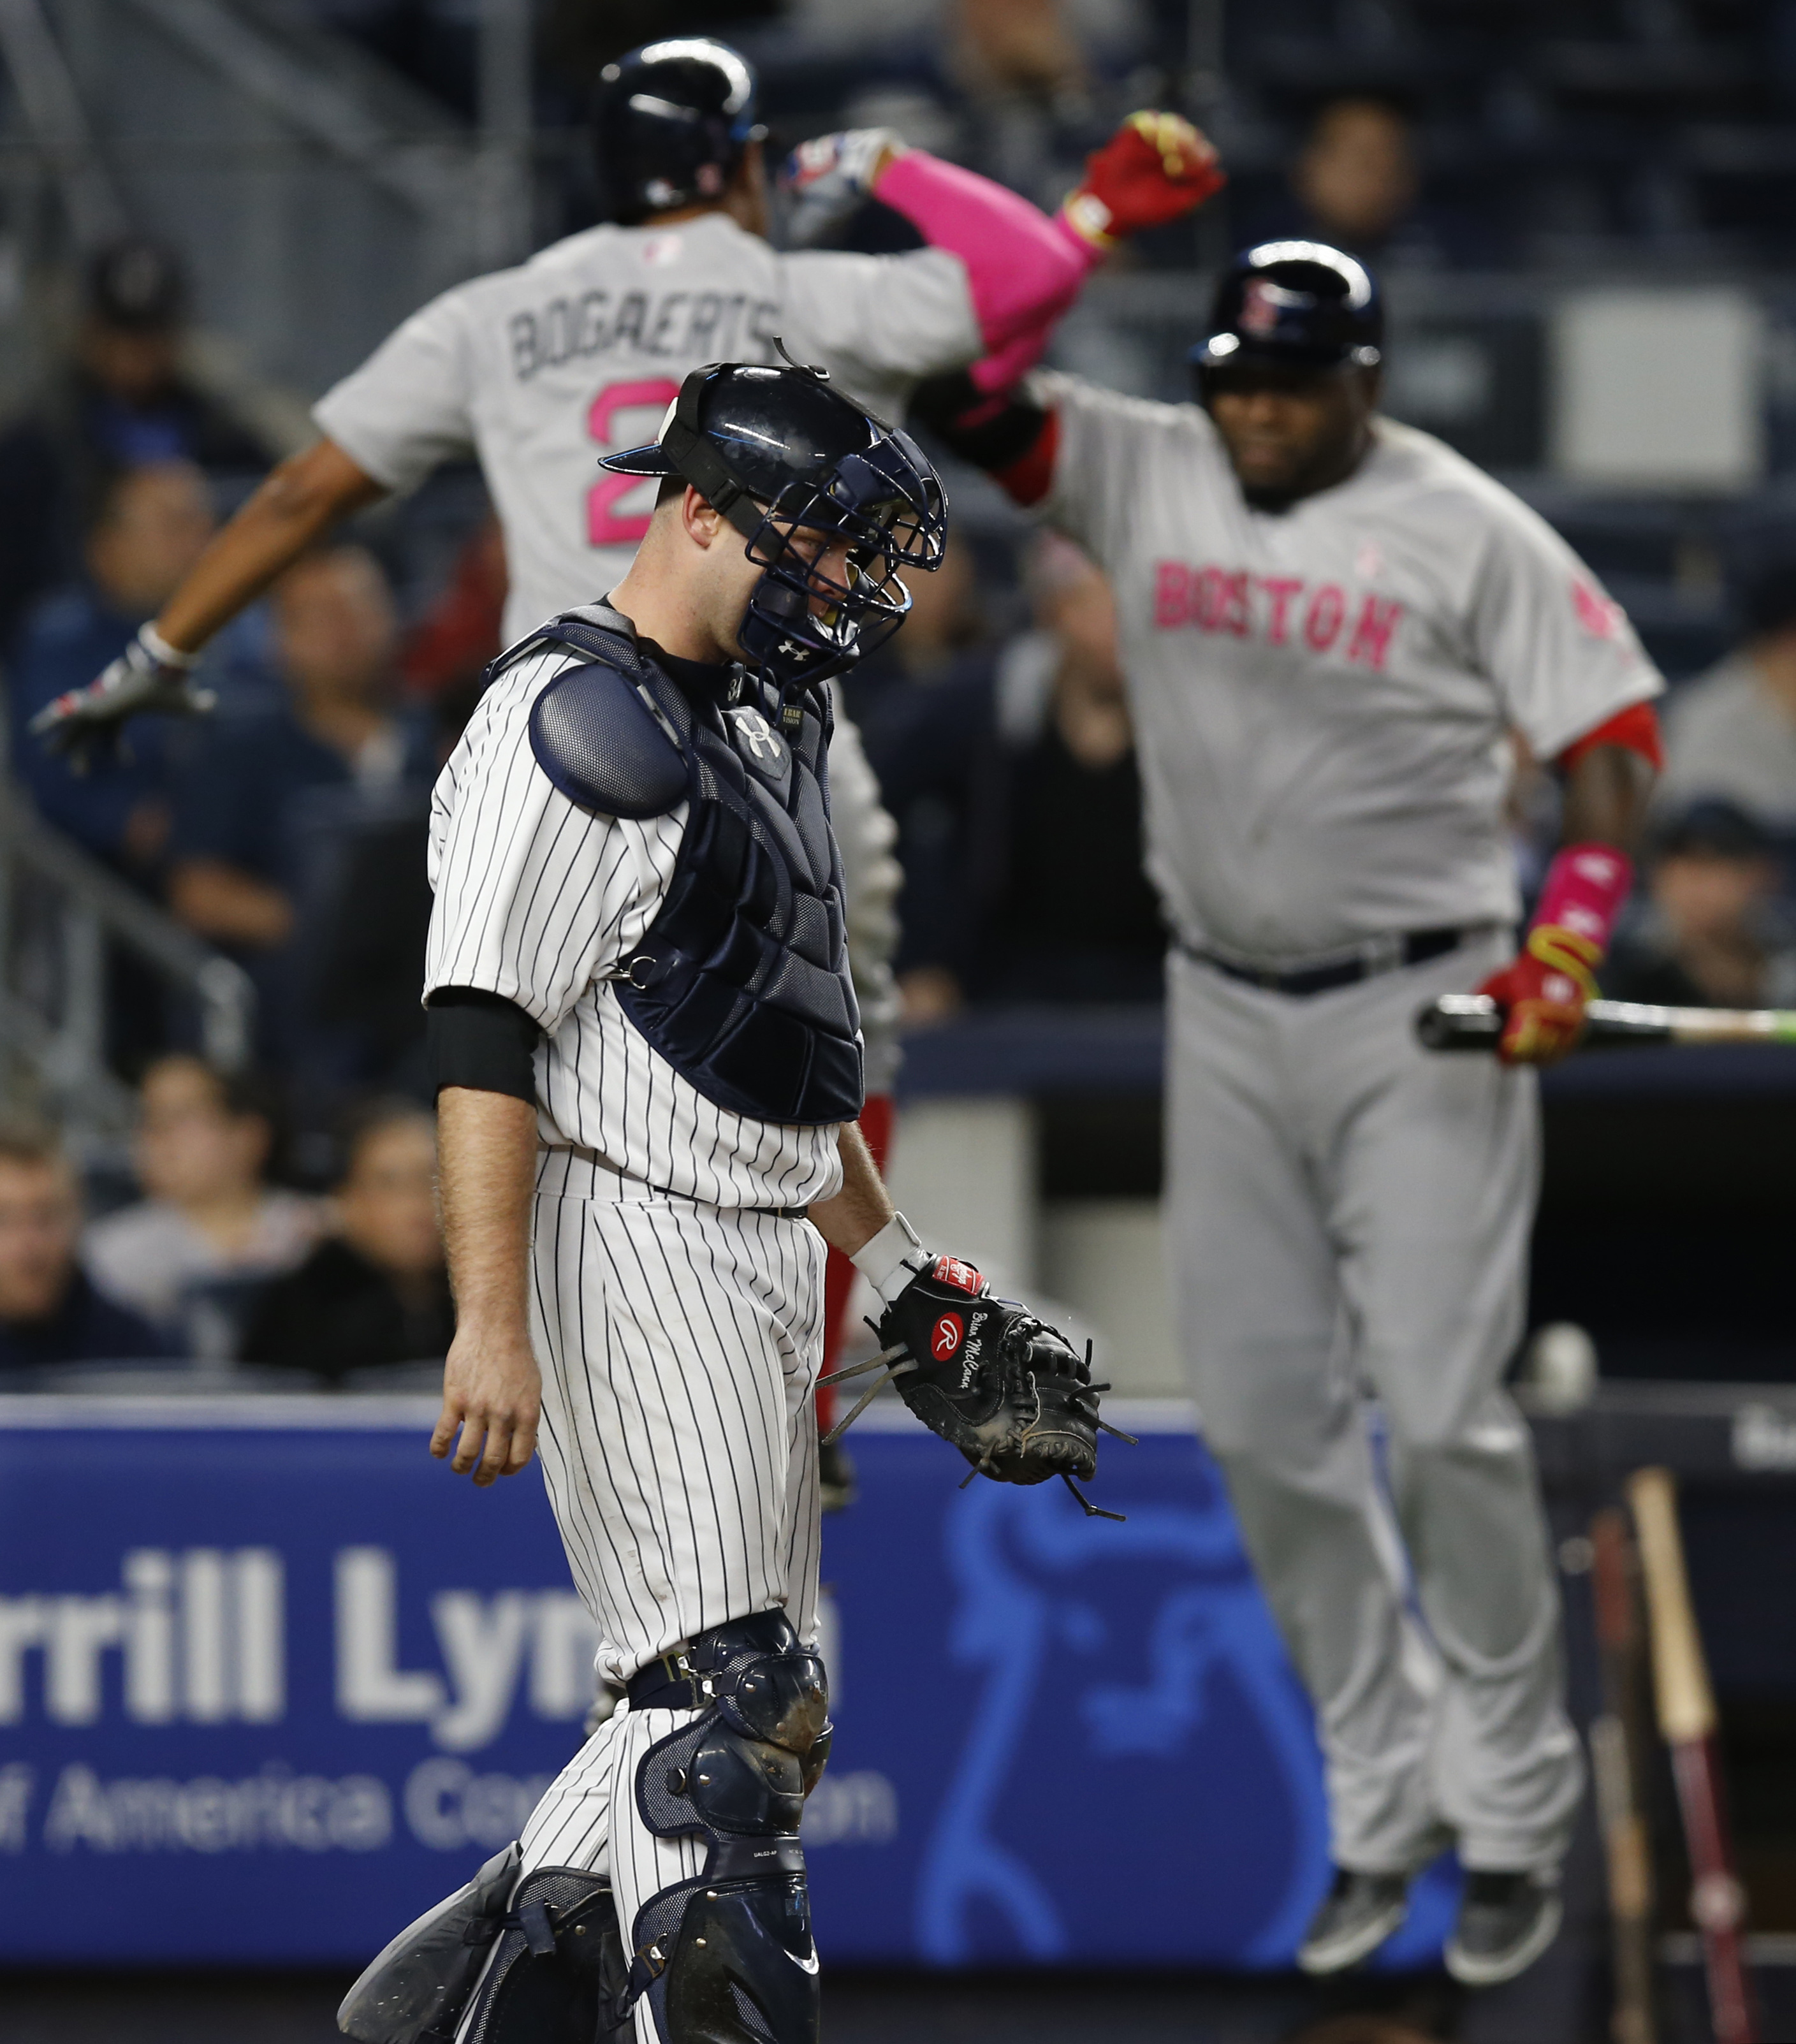 Boston Red Sox shortstop Xander Bogaerts (2) and Red Sox designated hitter David Ortiz celebrate behind New York Yankees catcher Brian McCann (34) during the seventh inning after Bogaerts hit a solo home run off New York Yankees relief pitcher Chasen Shre